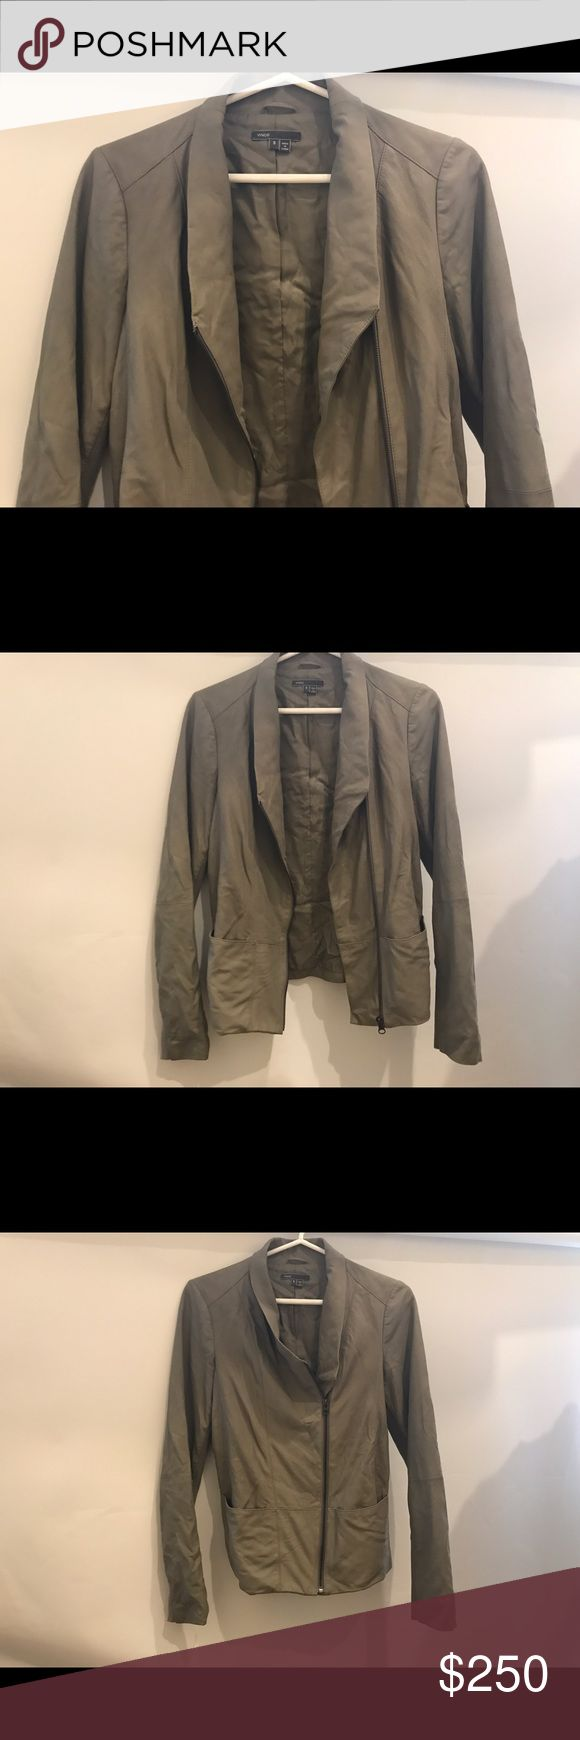 Vince Leather Jacket Size S - Barely Worn Vince leather jacket / olive / off gray color. Size Small. 100% leather. Worn maybe twice. Vince Jackets & Coats